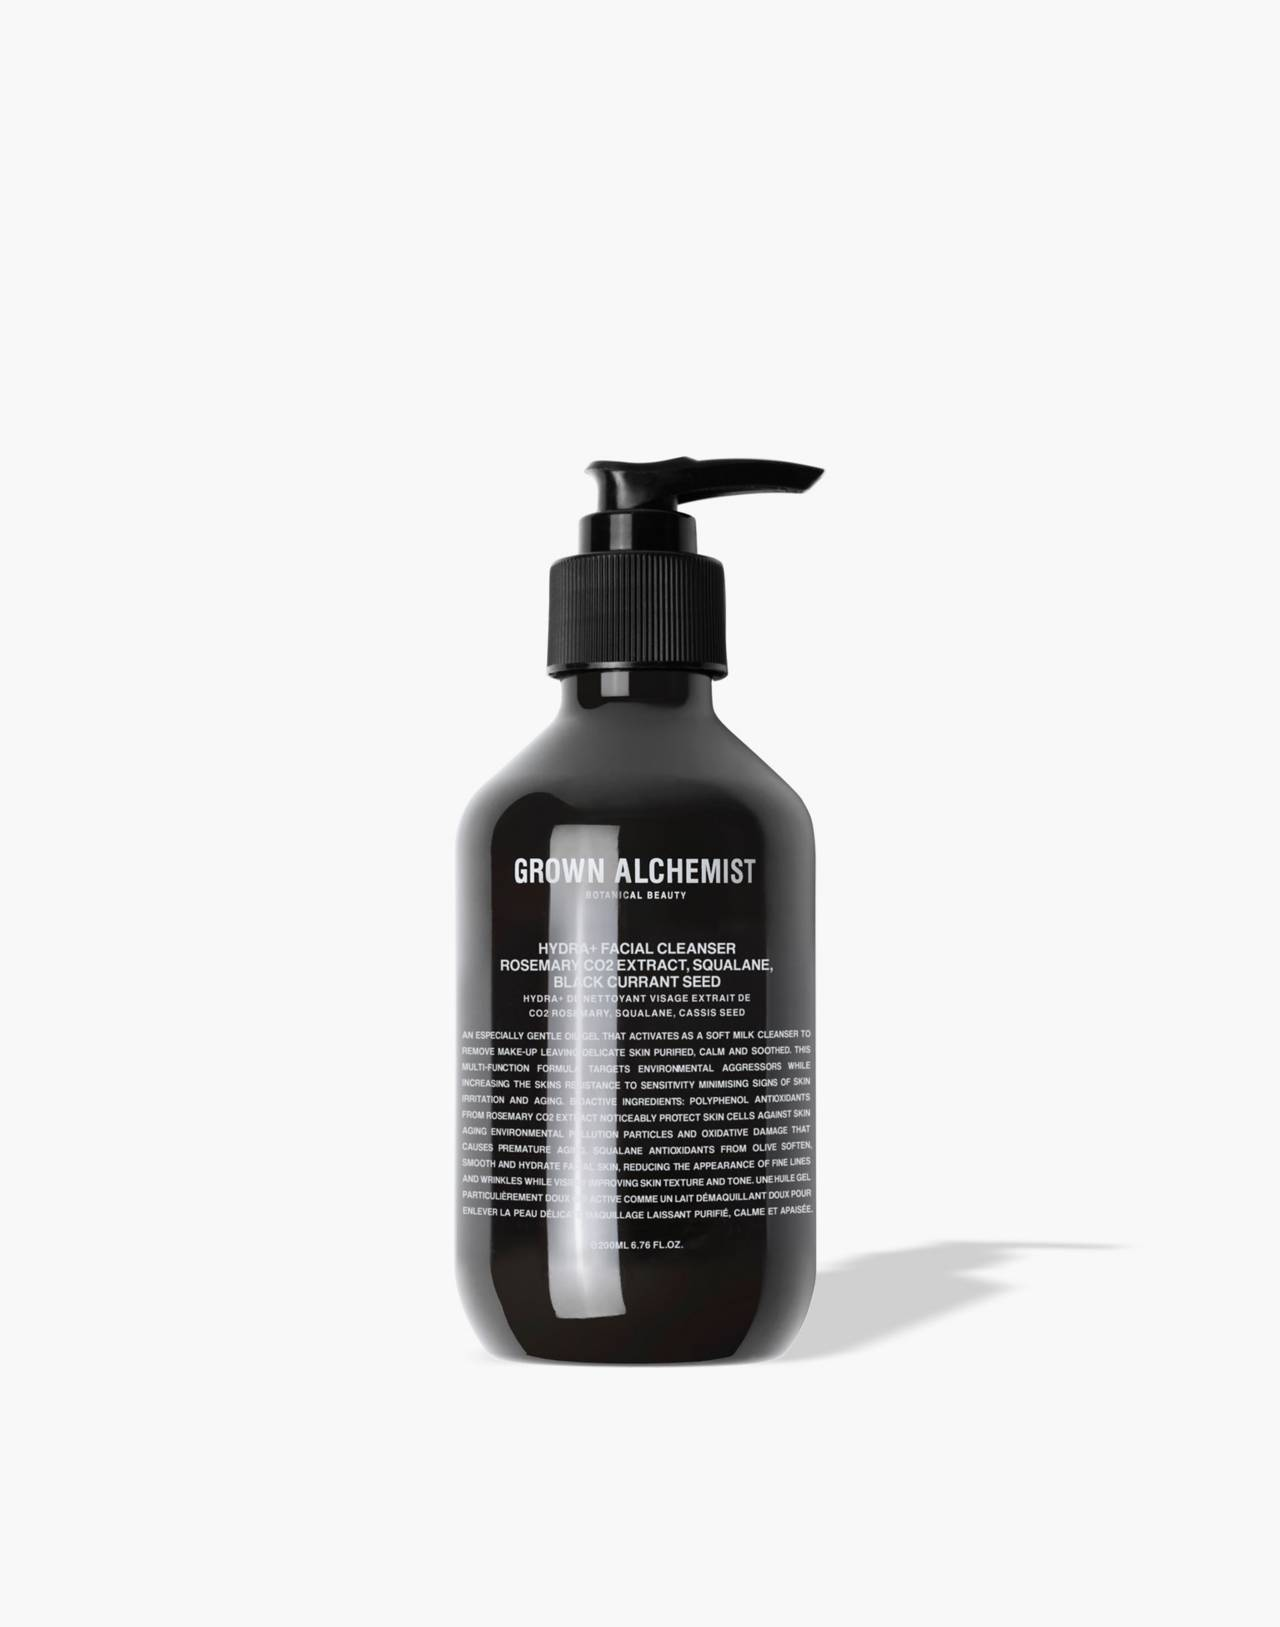 GROWN ALCHEMIST® Hydra + Oil-Gel Facial Cleanser: CO2 Extract, Squalane and Black Currant Seed in one color image 1